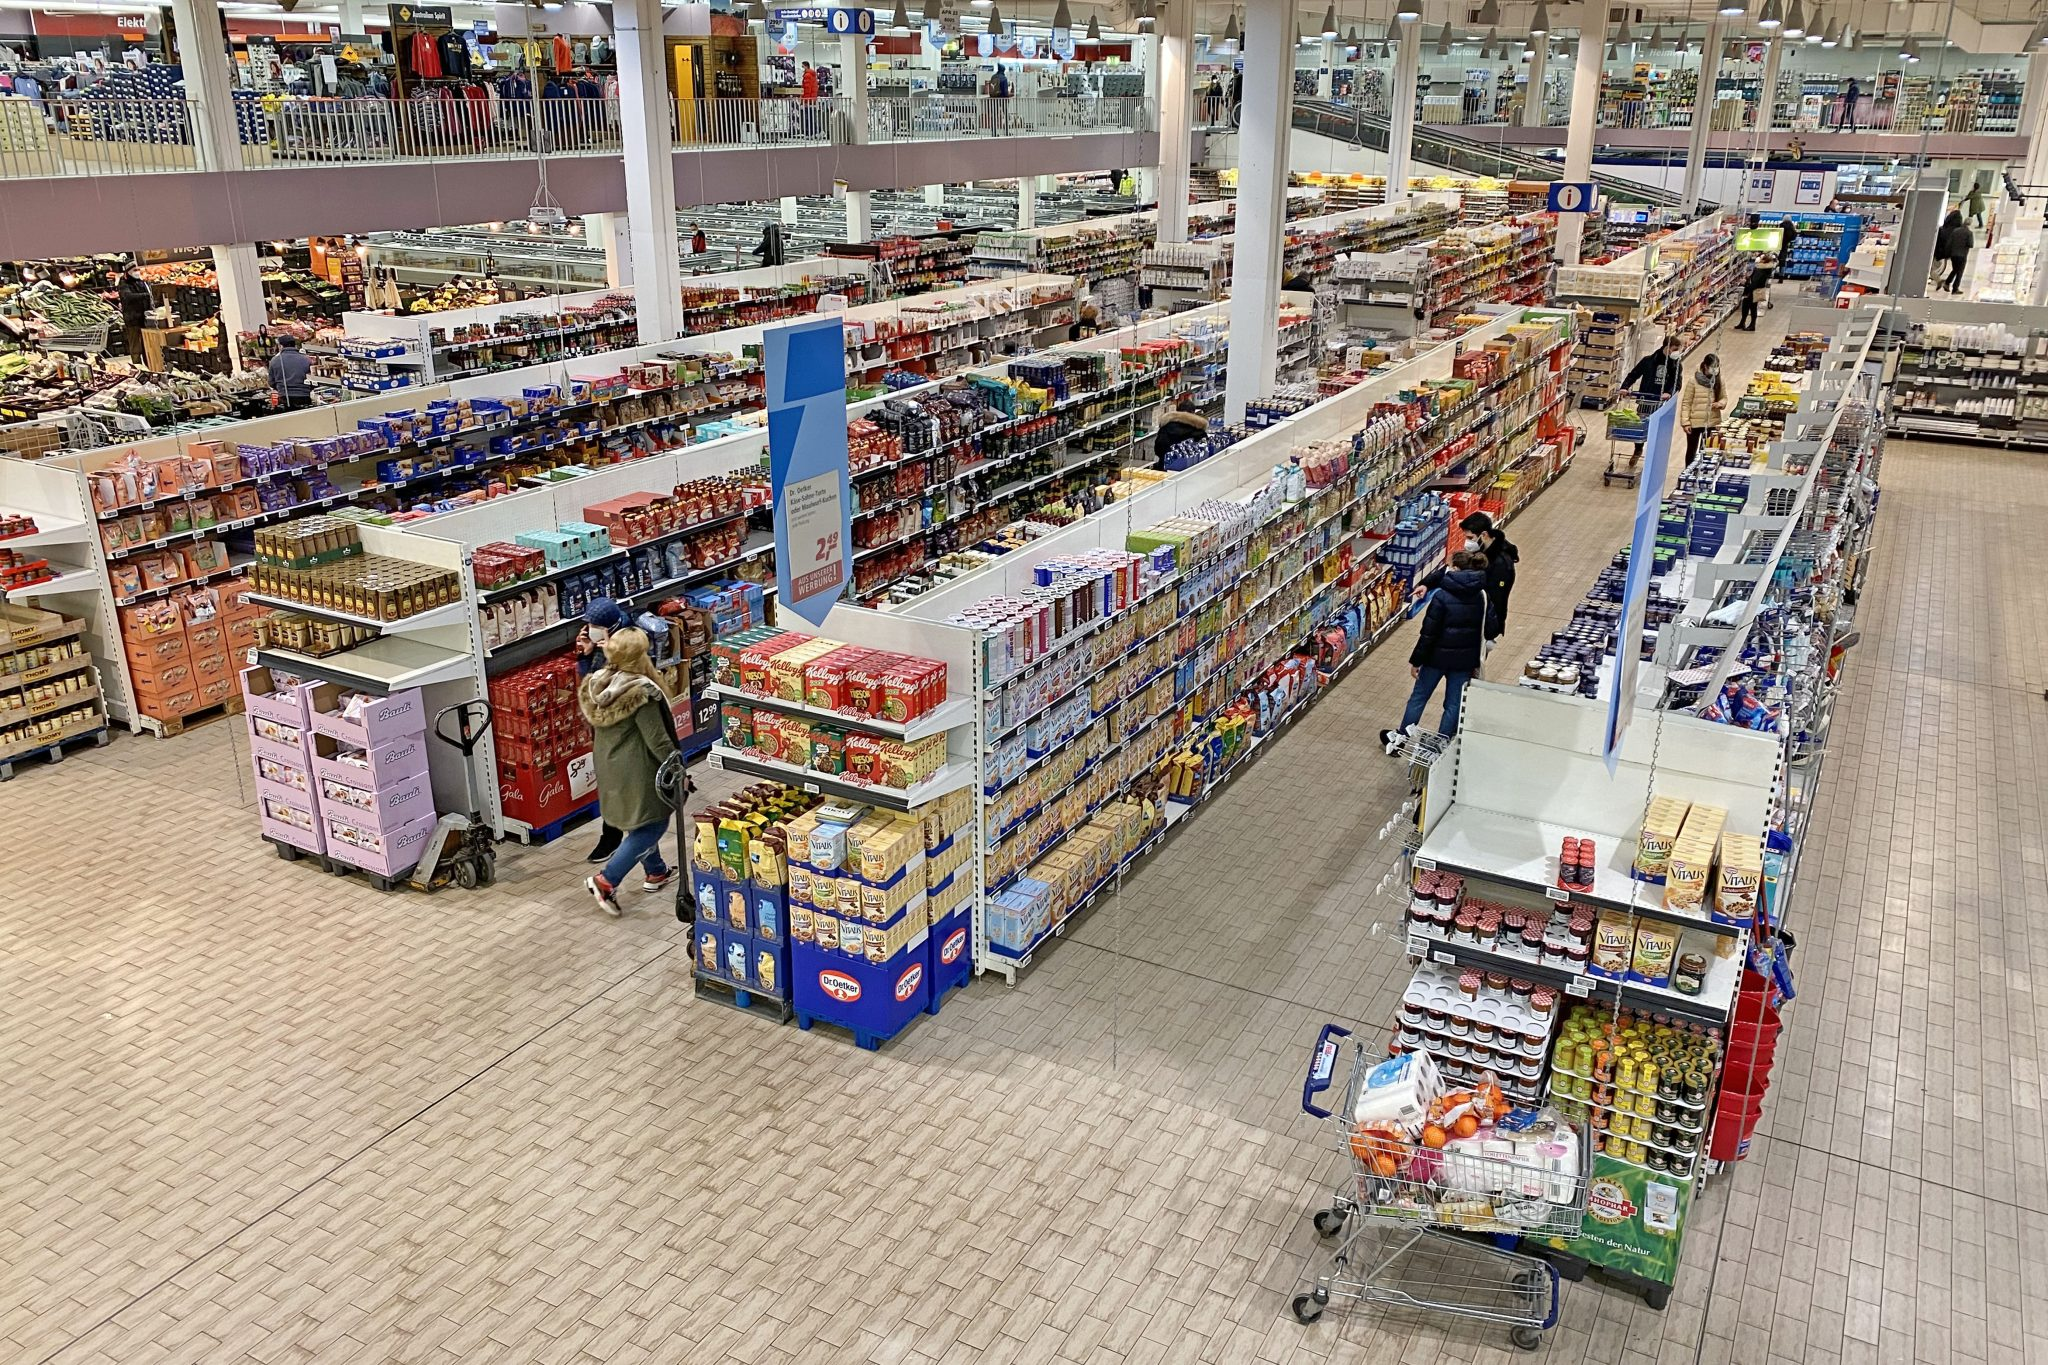 Aerial view of a supermarket in Munich, Germany in February 2021